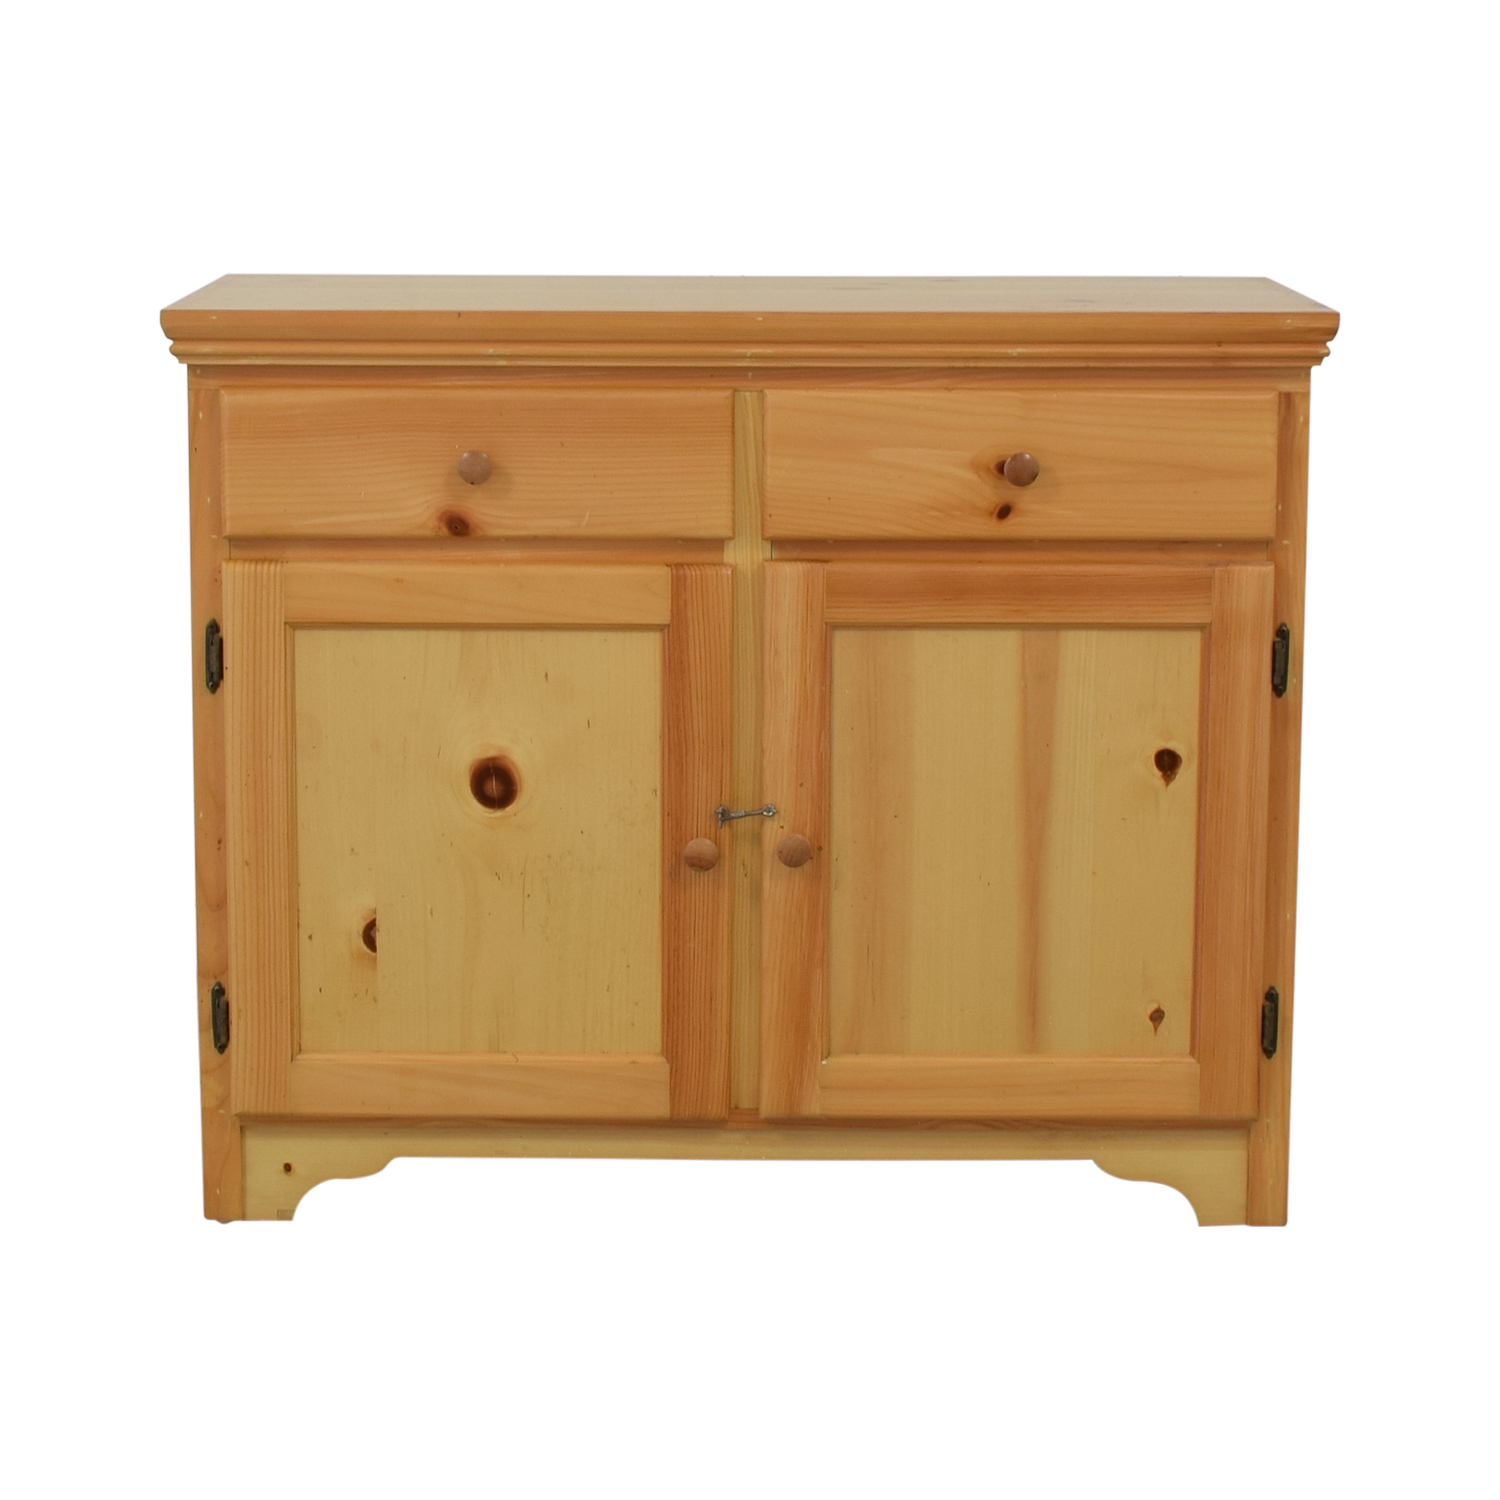 Gothic Cabinet Craft Kitchen Server / Utility Tables